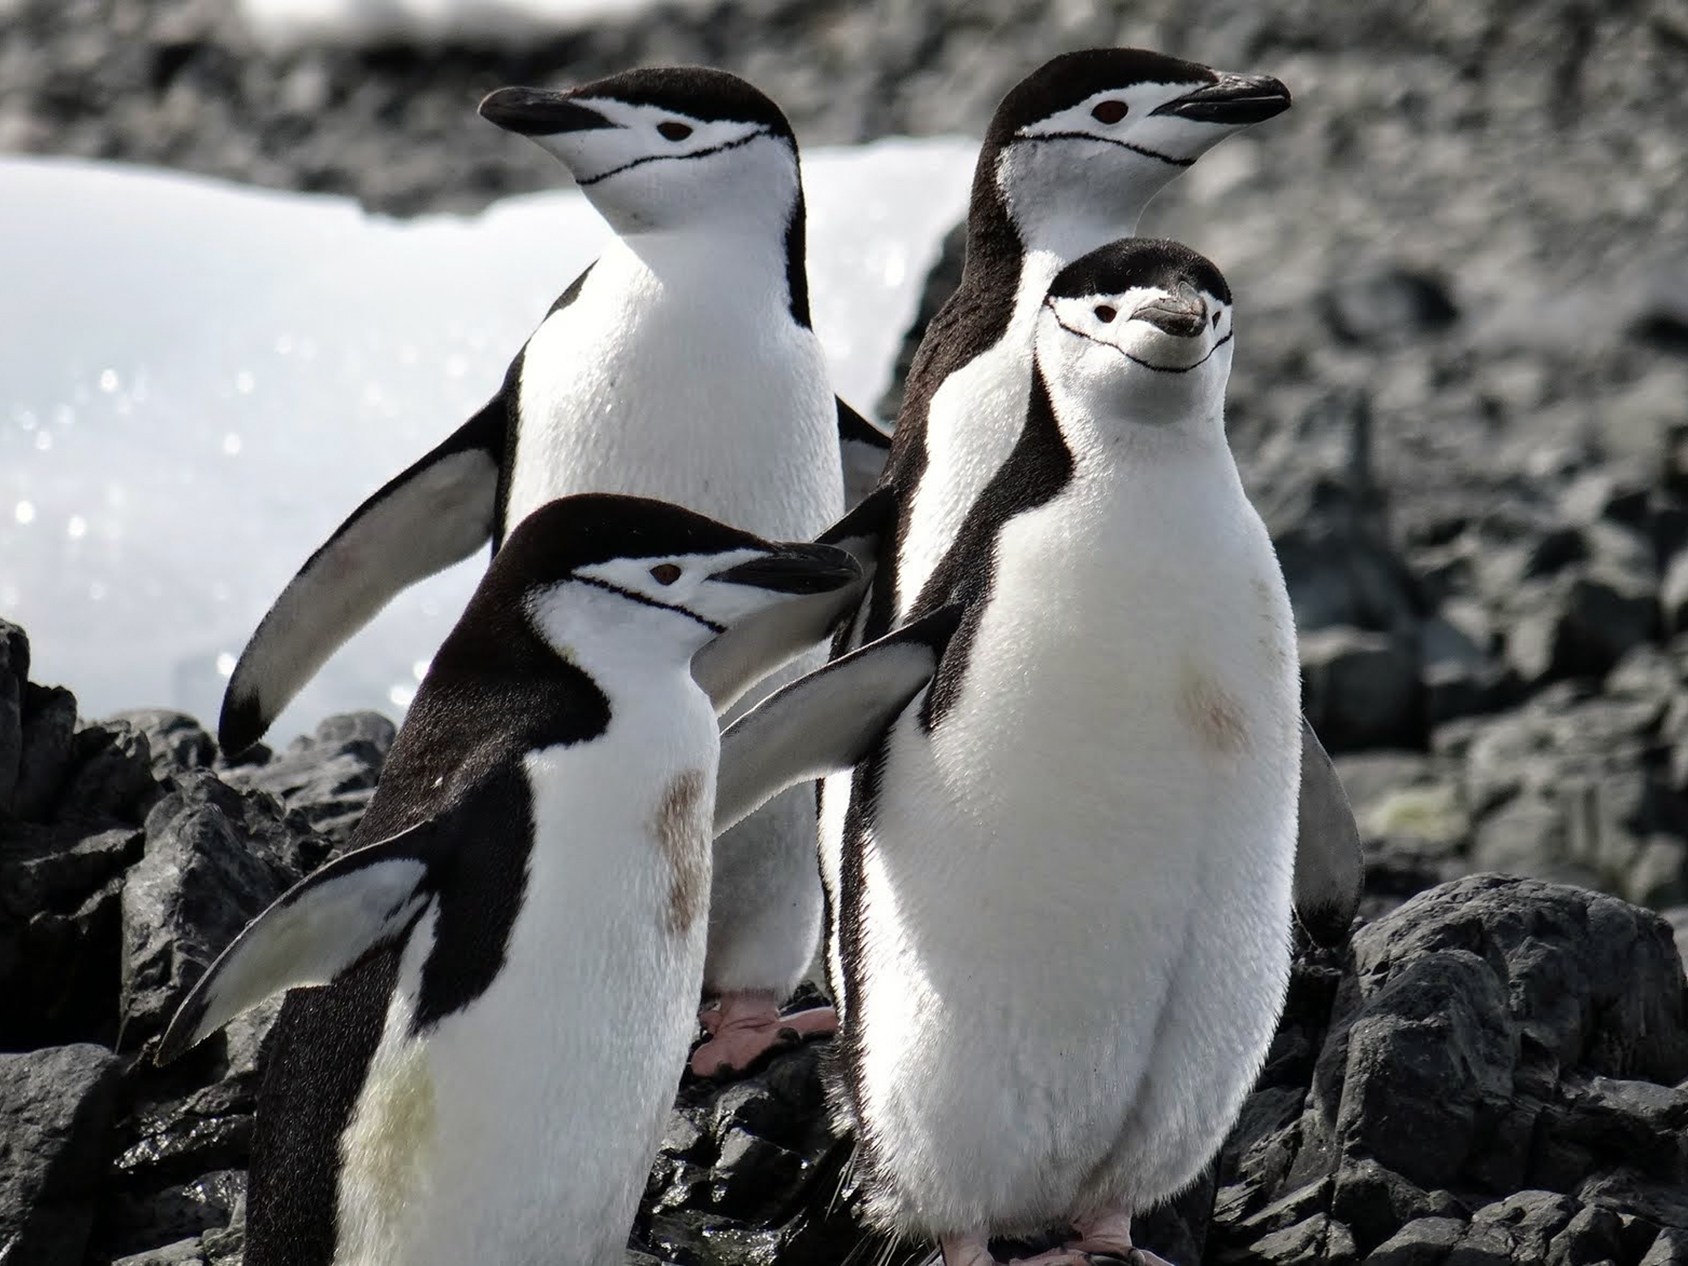 Our first encounter with the white and black ambassadors of Antarctica took place a day and a half into our journey, when we came across a colony of chinstrap penguins on Barrientos Island.